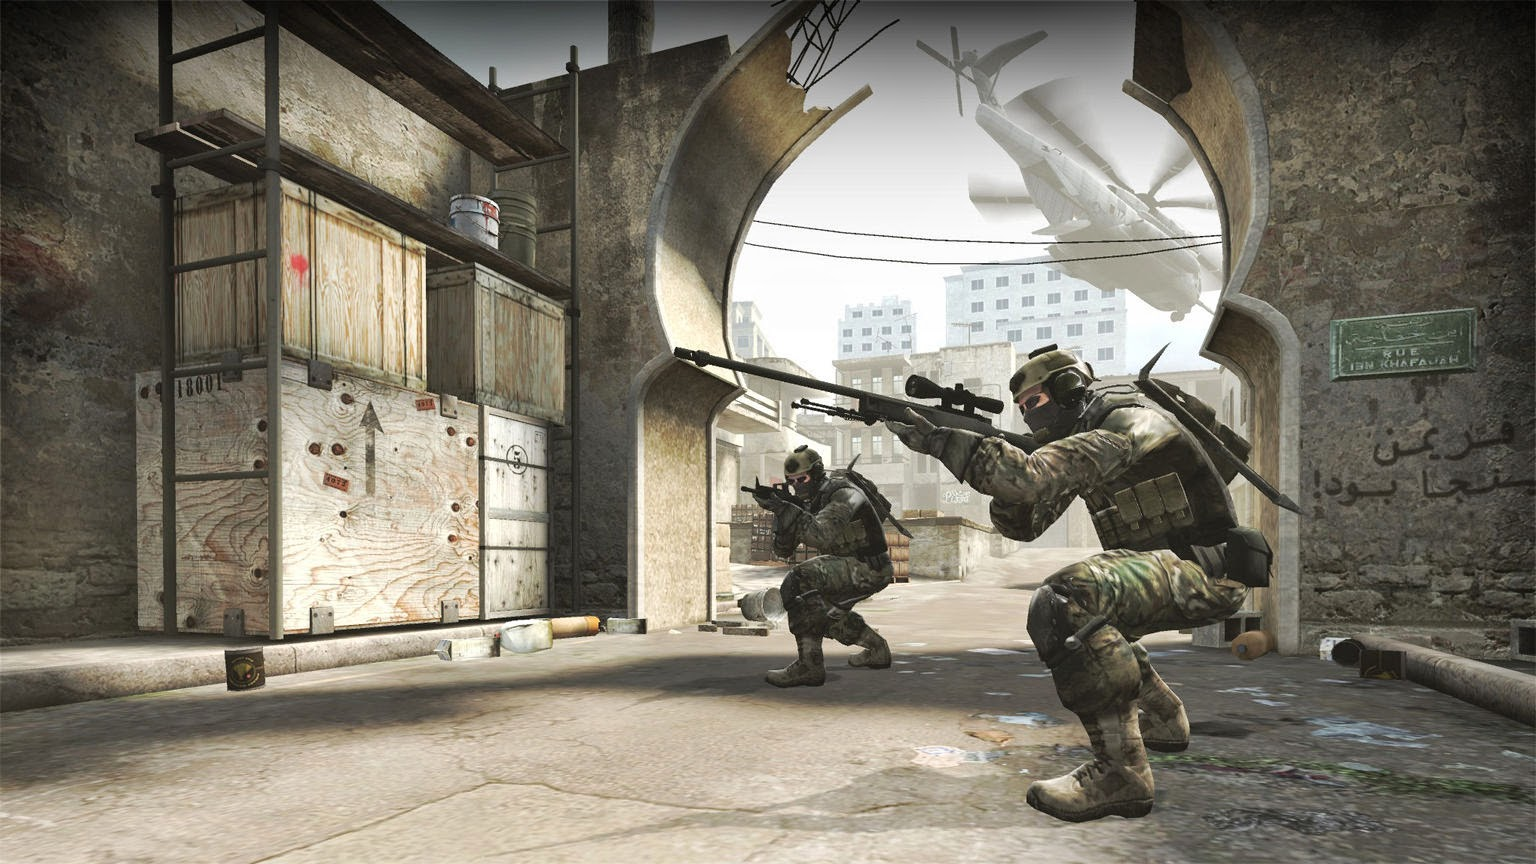 Counter-Strike Complete + Complete  RU/CIS + Discounts!